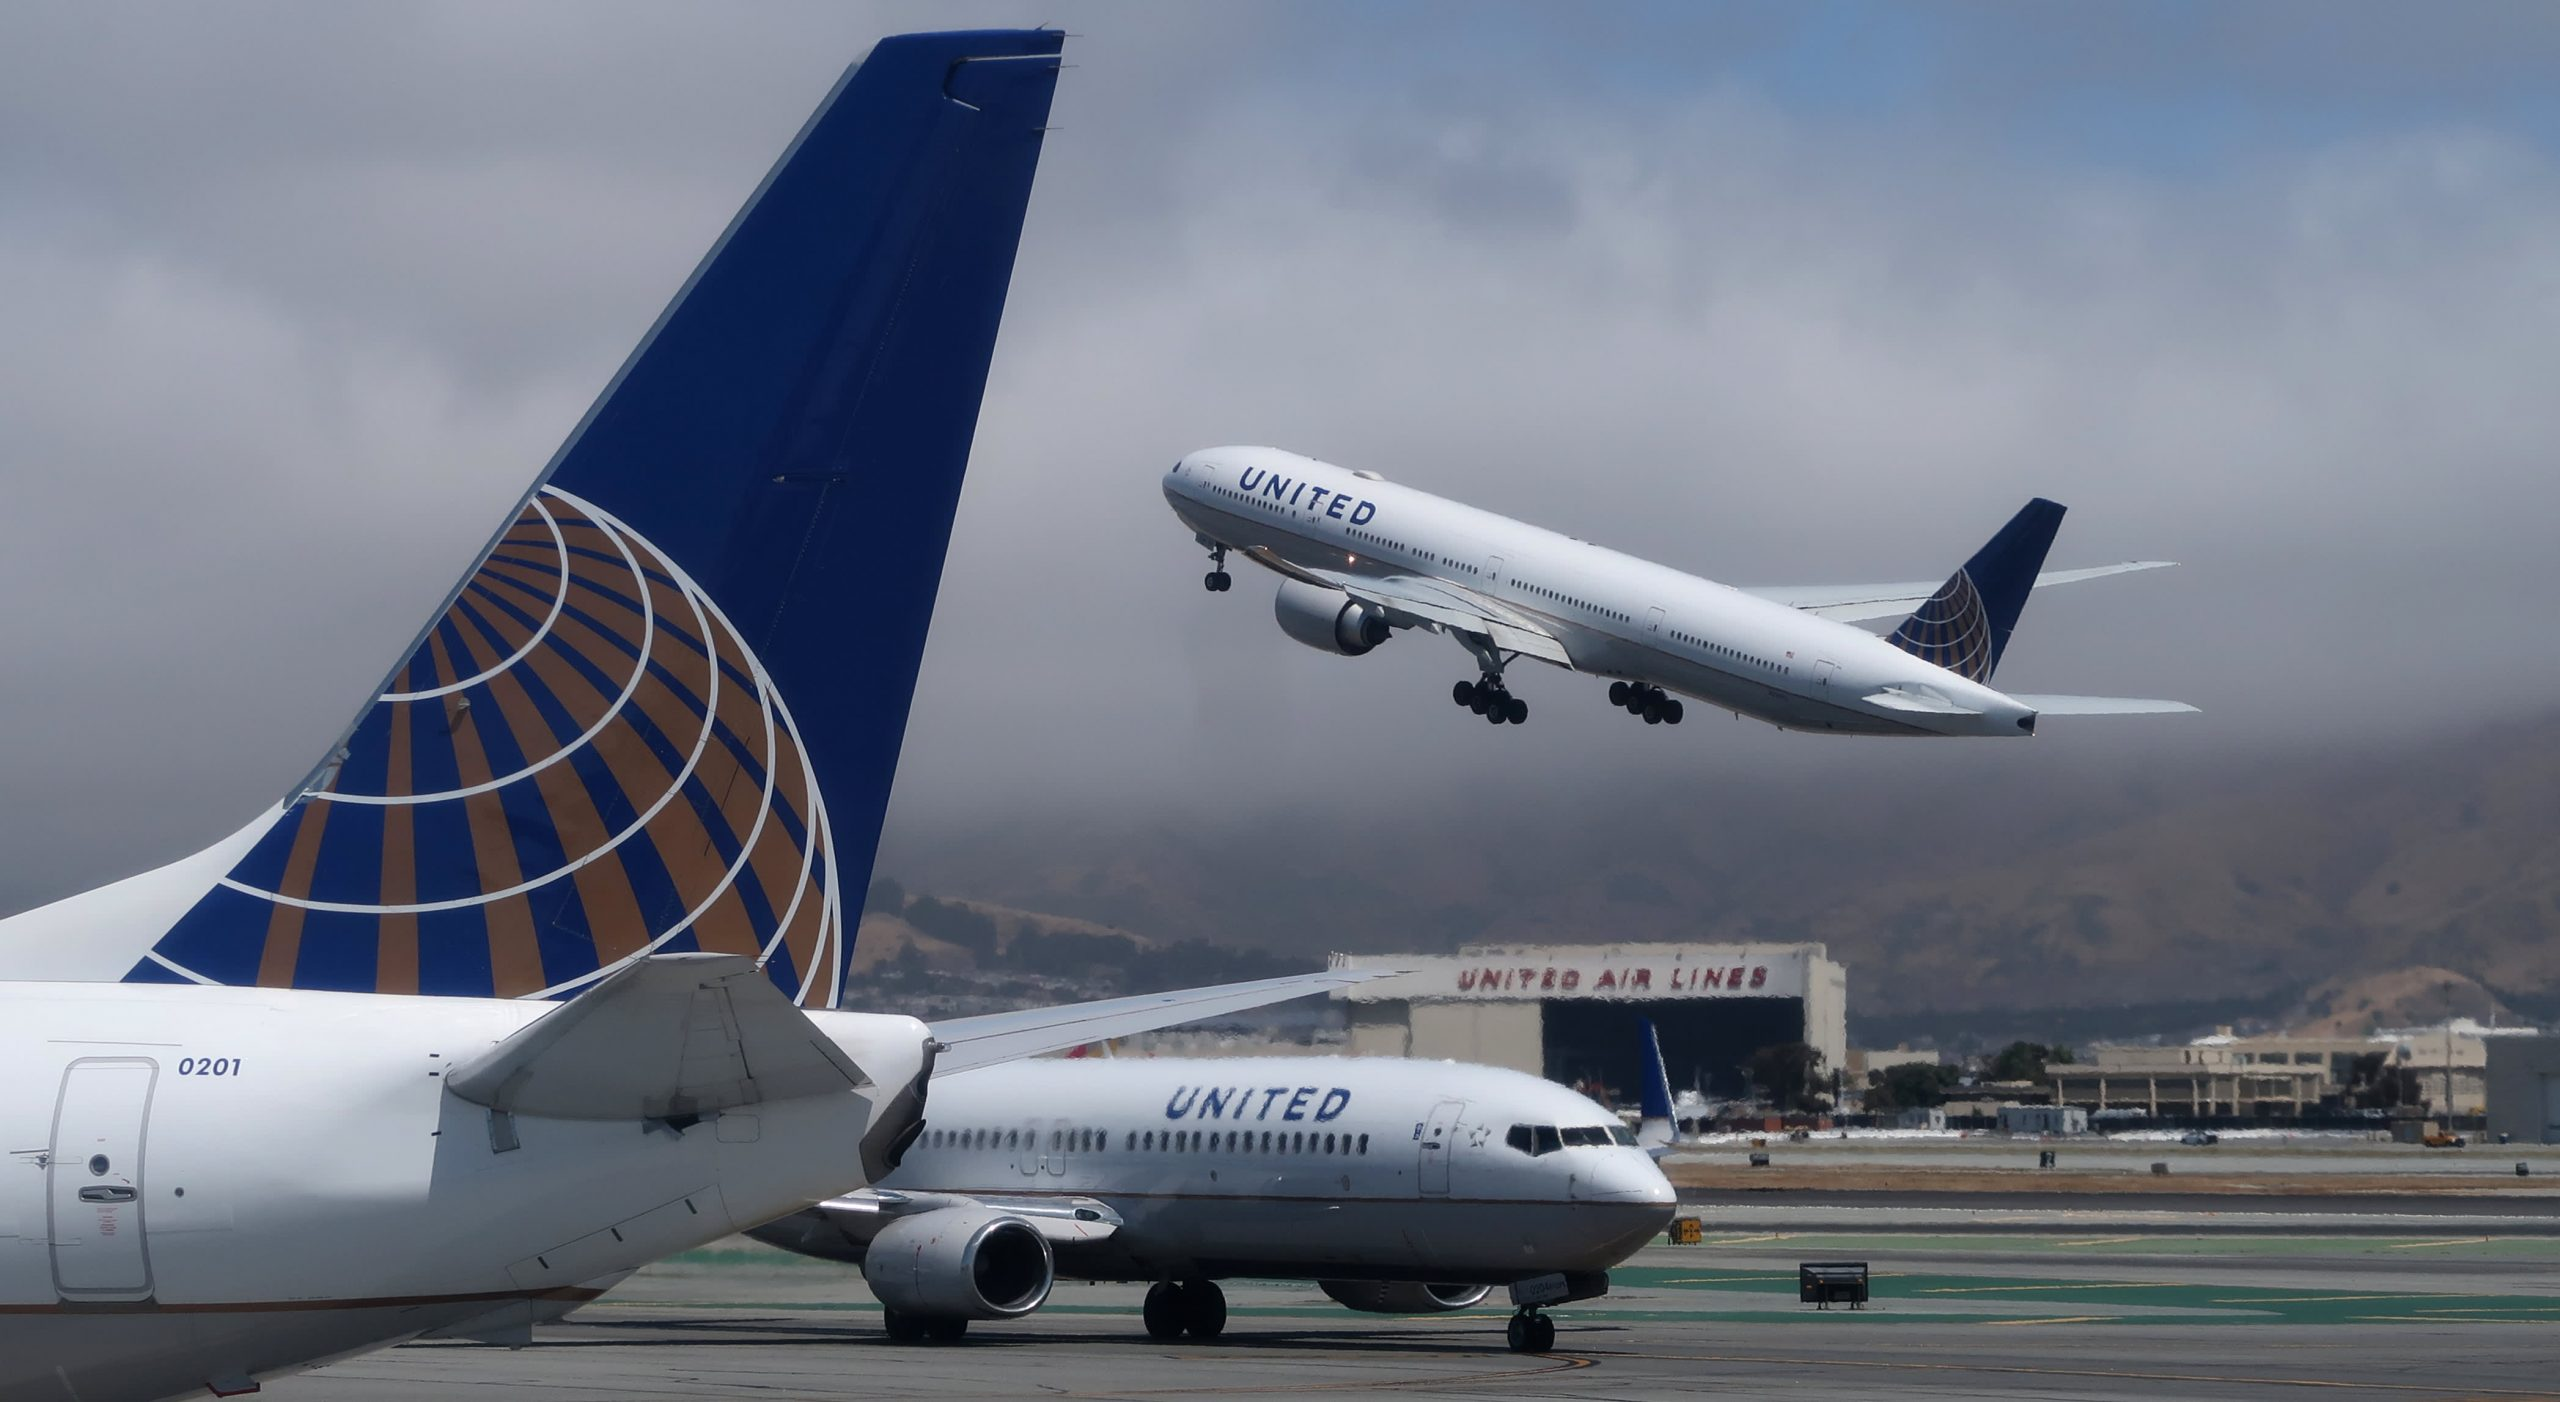 United's unvaccinated staff drops from 593 to 320 after airline said it would fire them